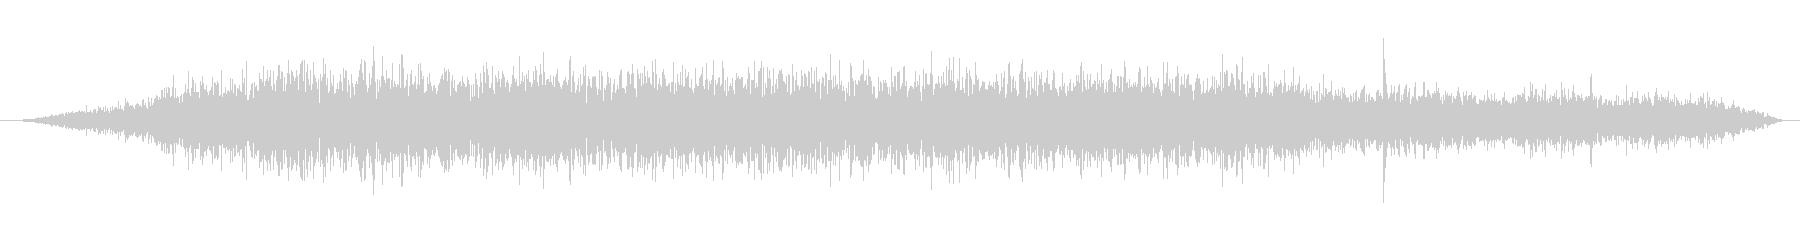 This is the sound of the takeoff of an airplane recorded on board.'s unreproduced waveform